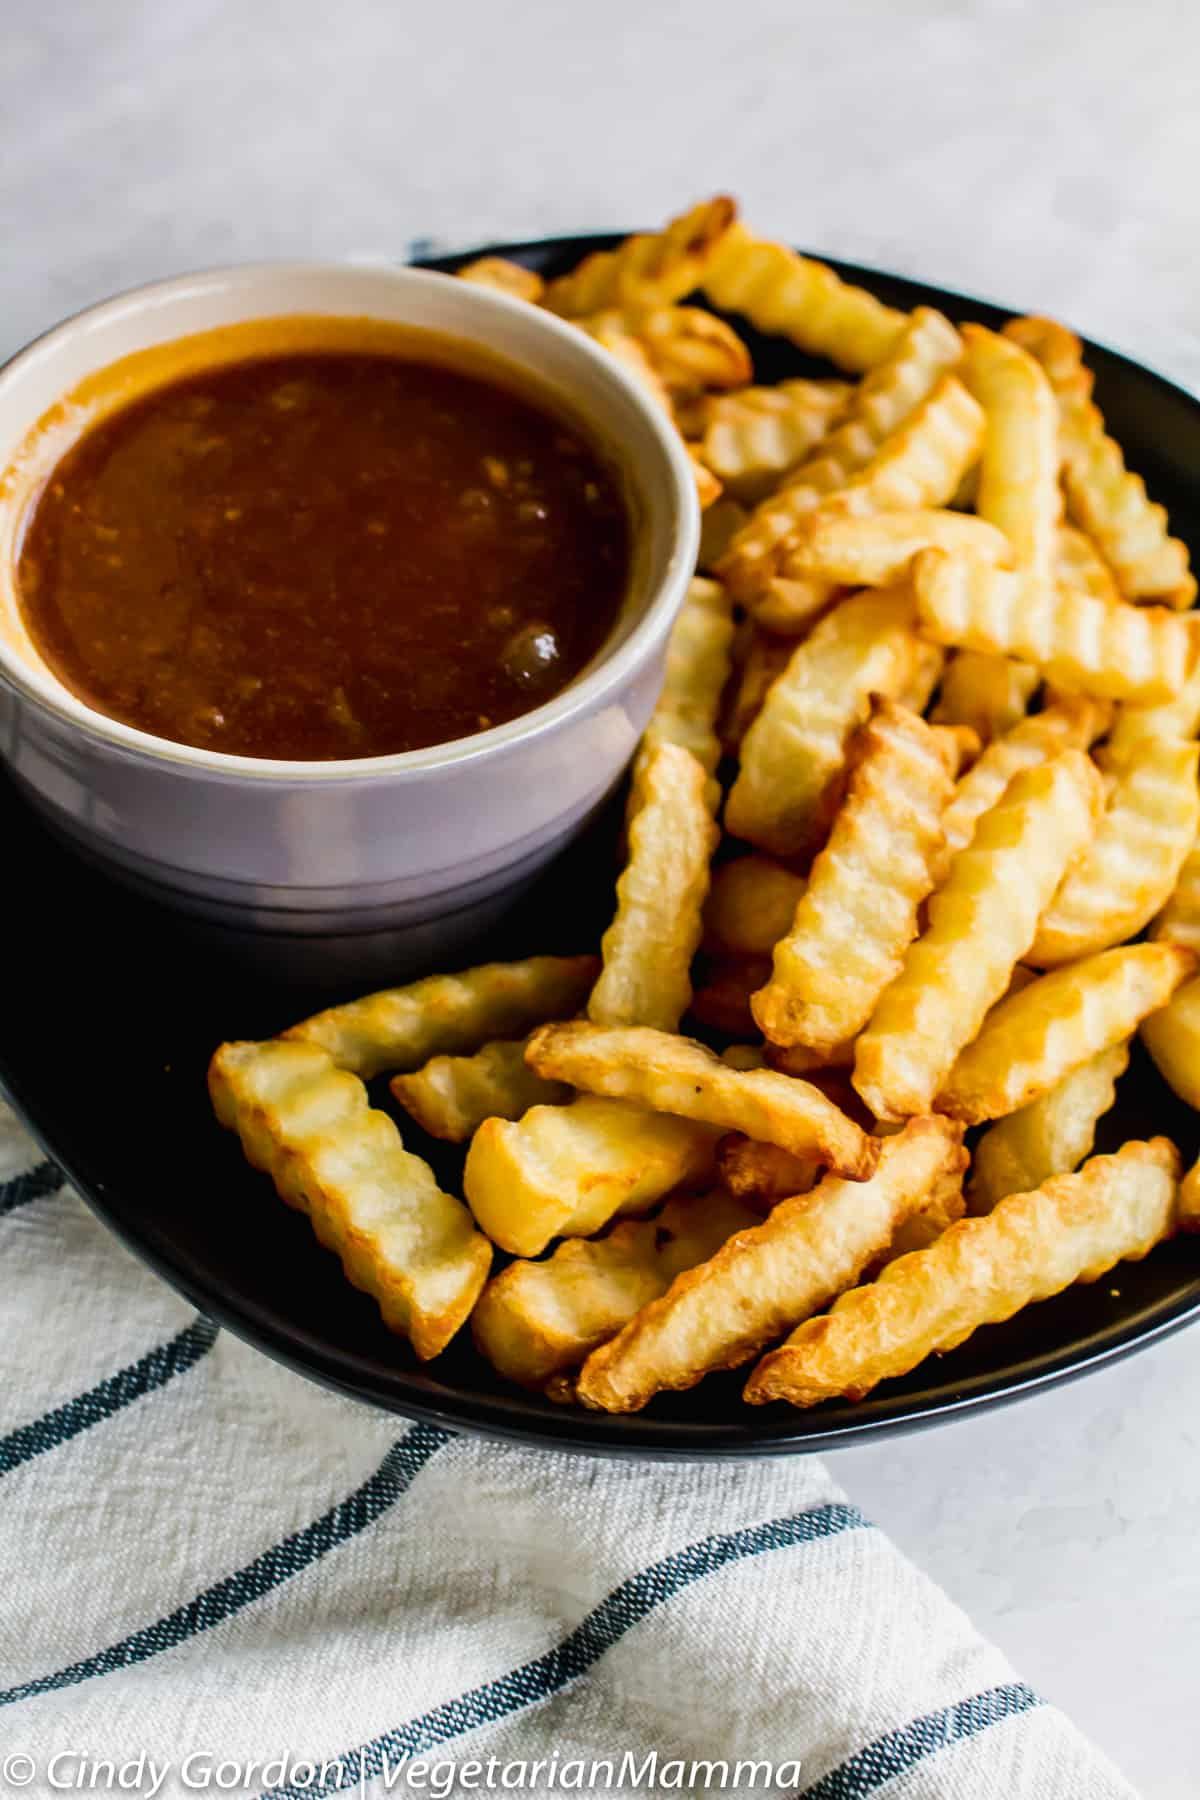 bowl of Dr Pepper BBQ Sauce on a plate with french fries